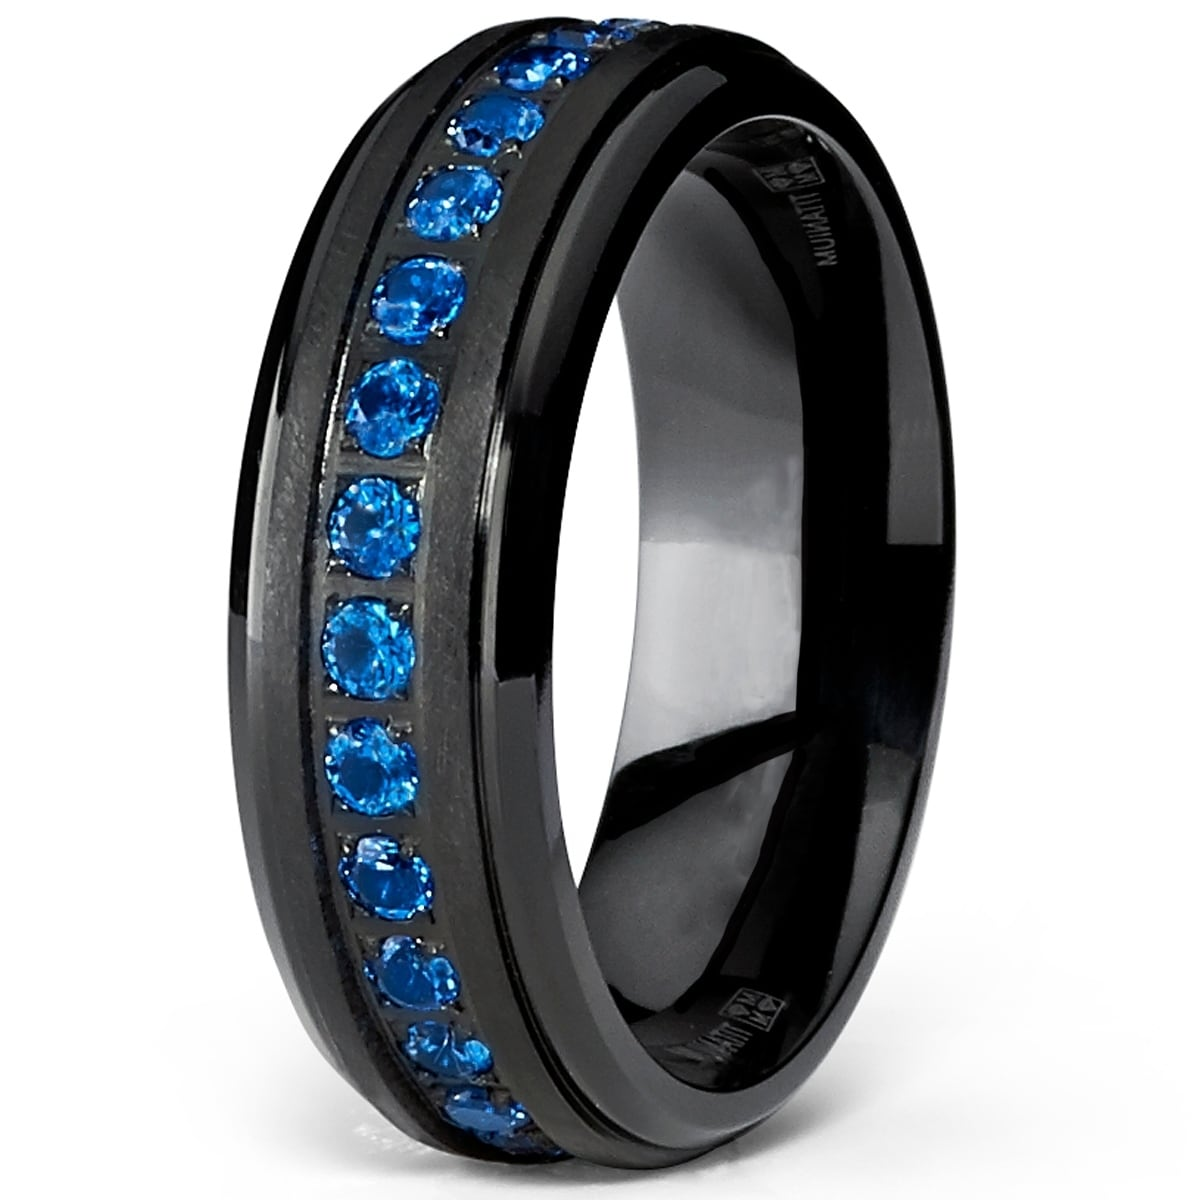 Oliveti Men's Black Titanium Wedding Band Eternity Ring Blue Cubic Zirconia  7mm - Free Shipping On Orders Over $45 - Overstock.com - 23615682